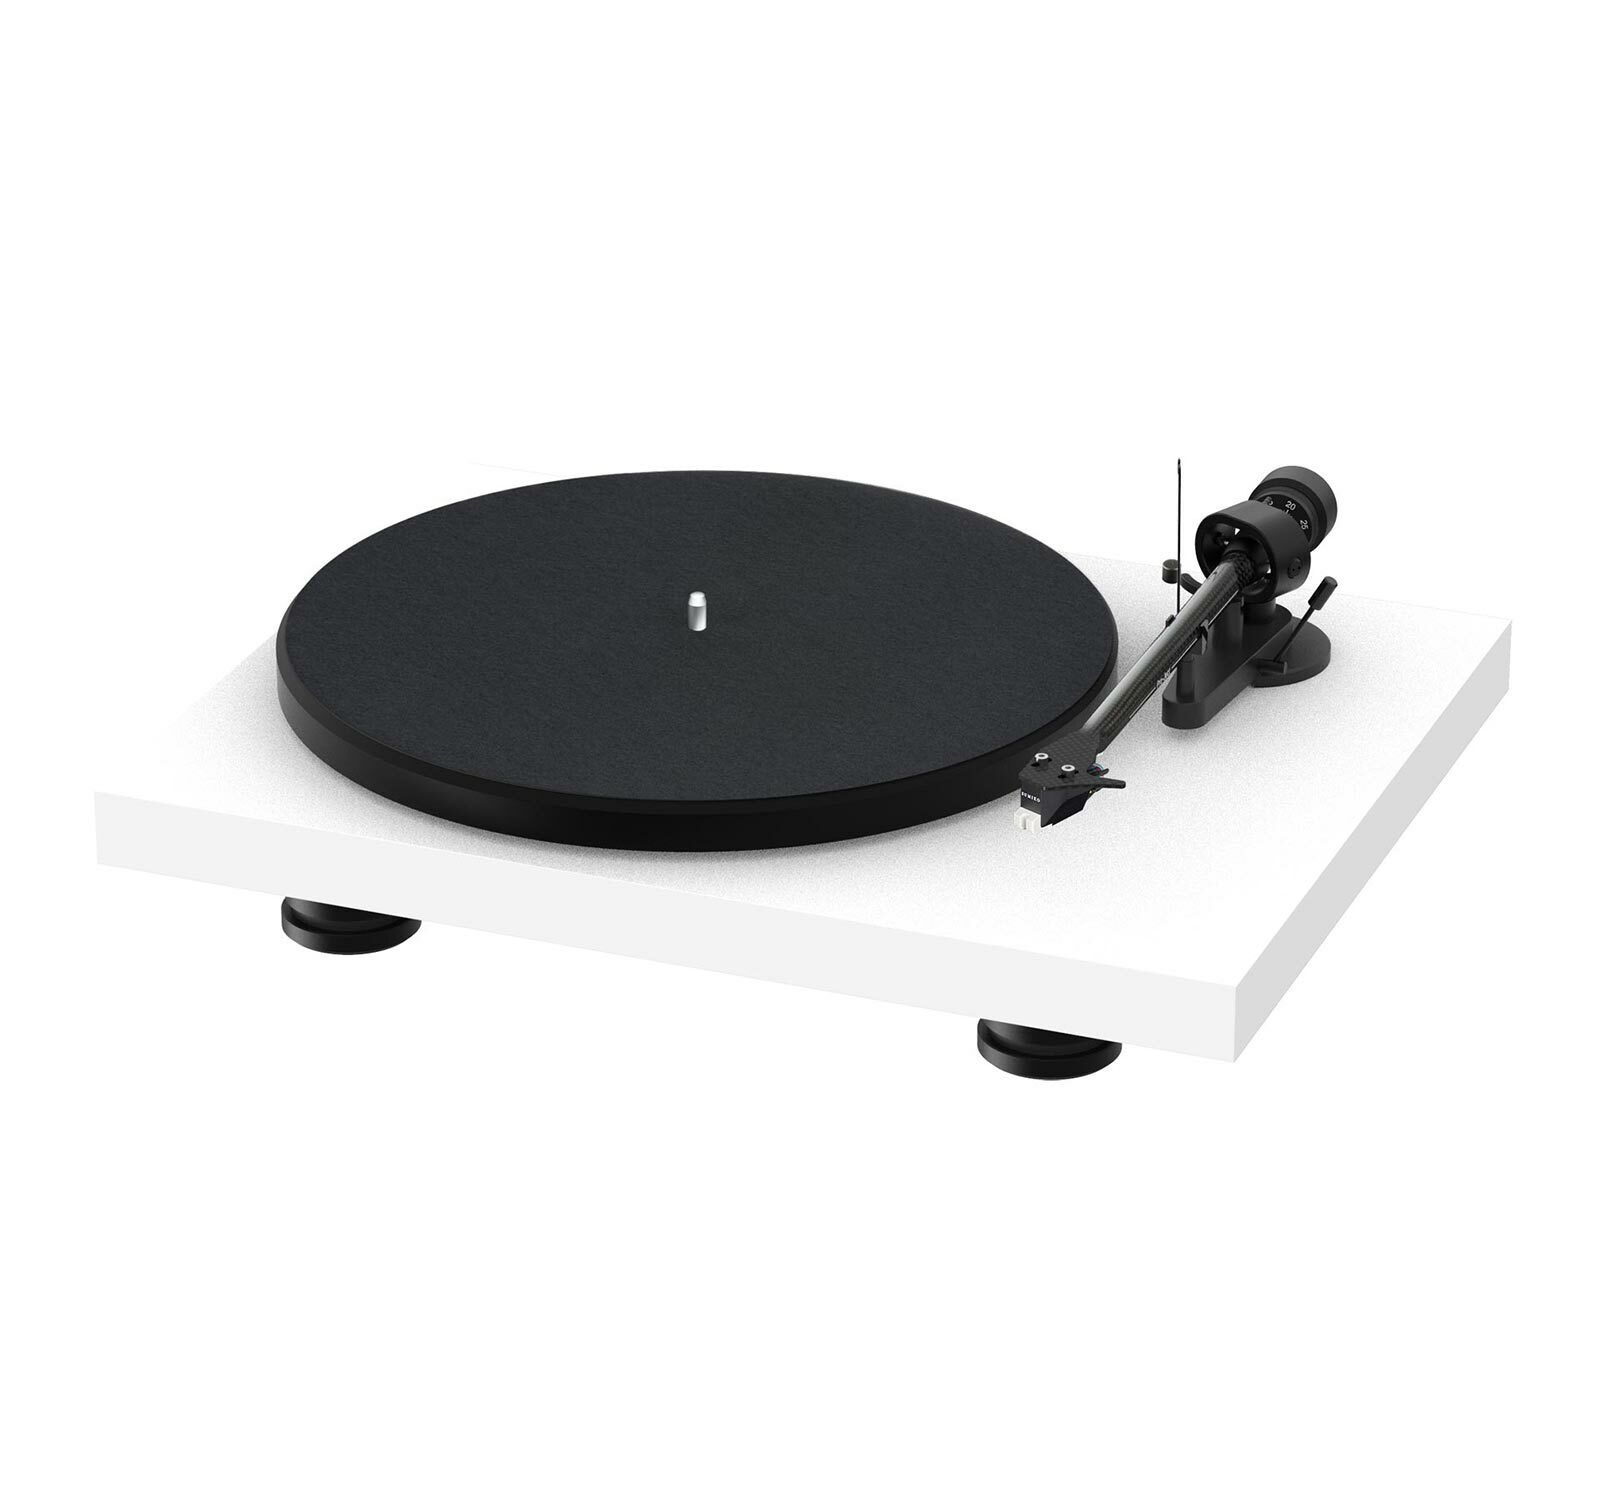 Pro-Ject Debut Carbon Evolution Satin White Turntable (Open Box). Buy it now for 448.97